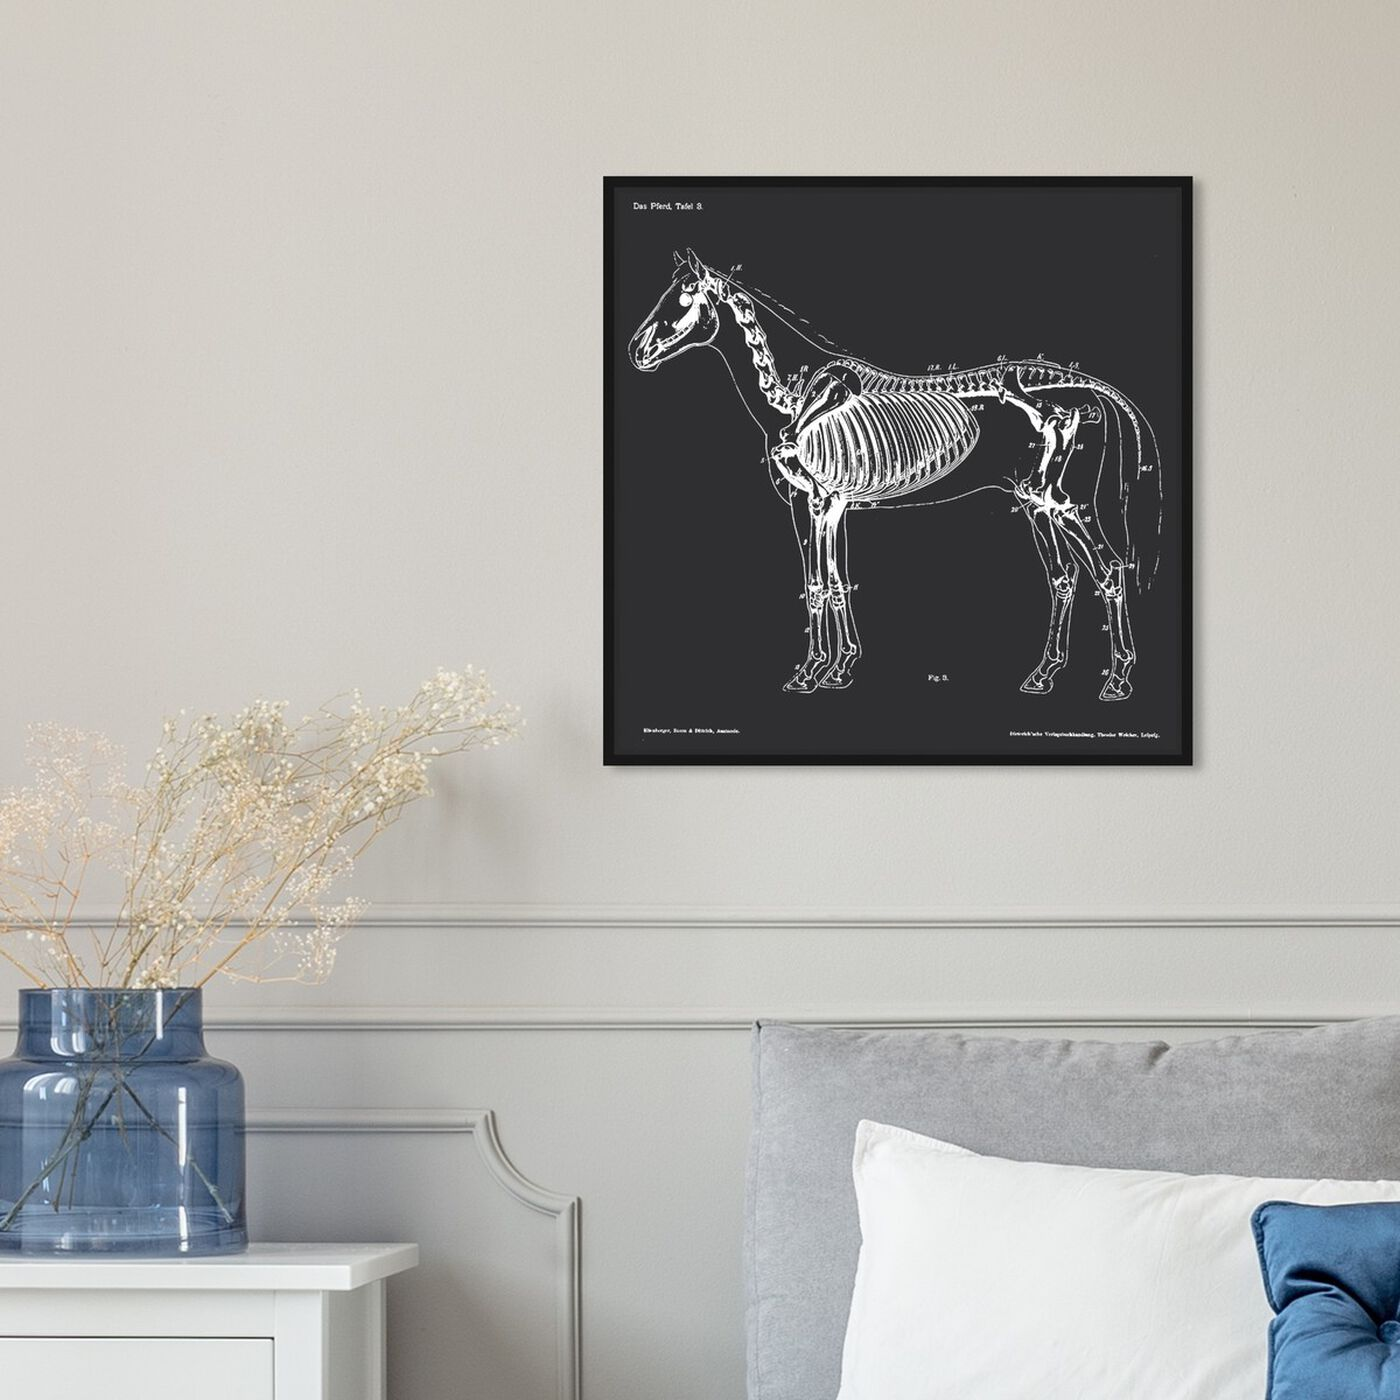 Hanging view of Squelette Du Cheval featuring animals and skeletons art.